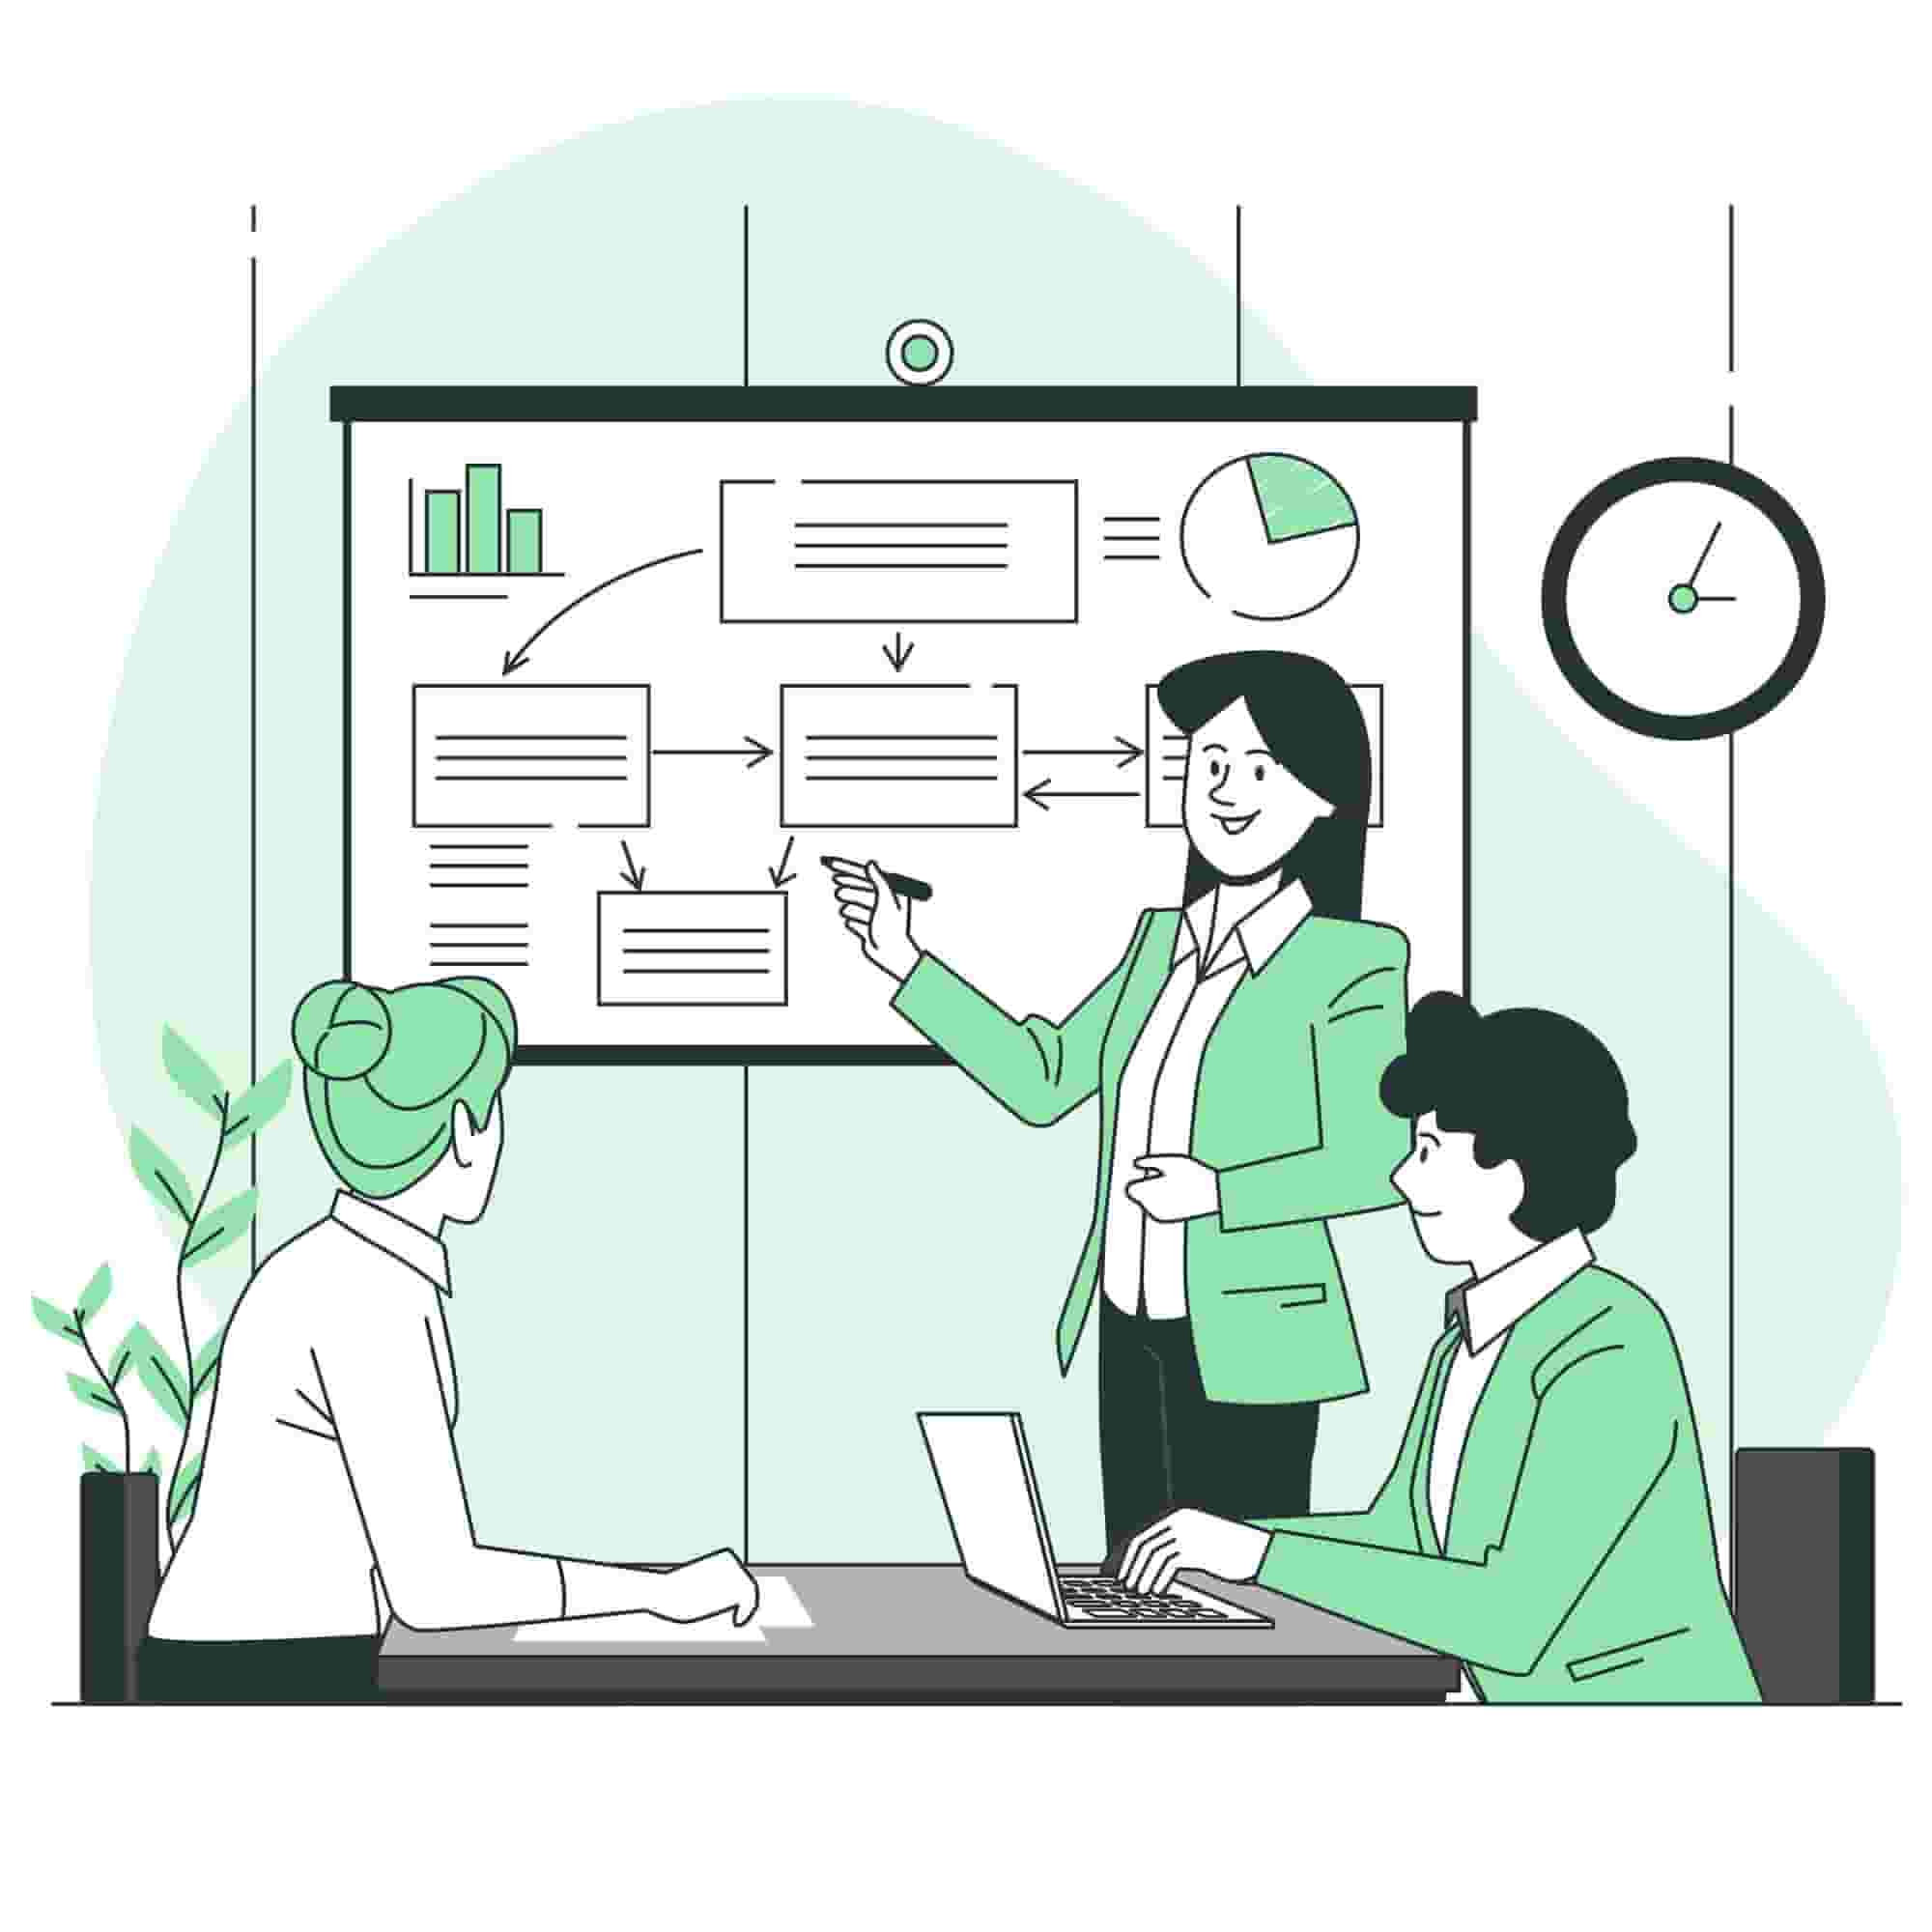 meeting productivity can be increased with clear setting of meeting objectives and goals